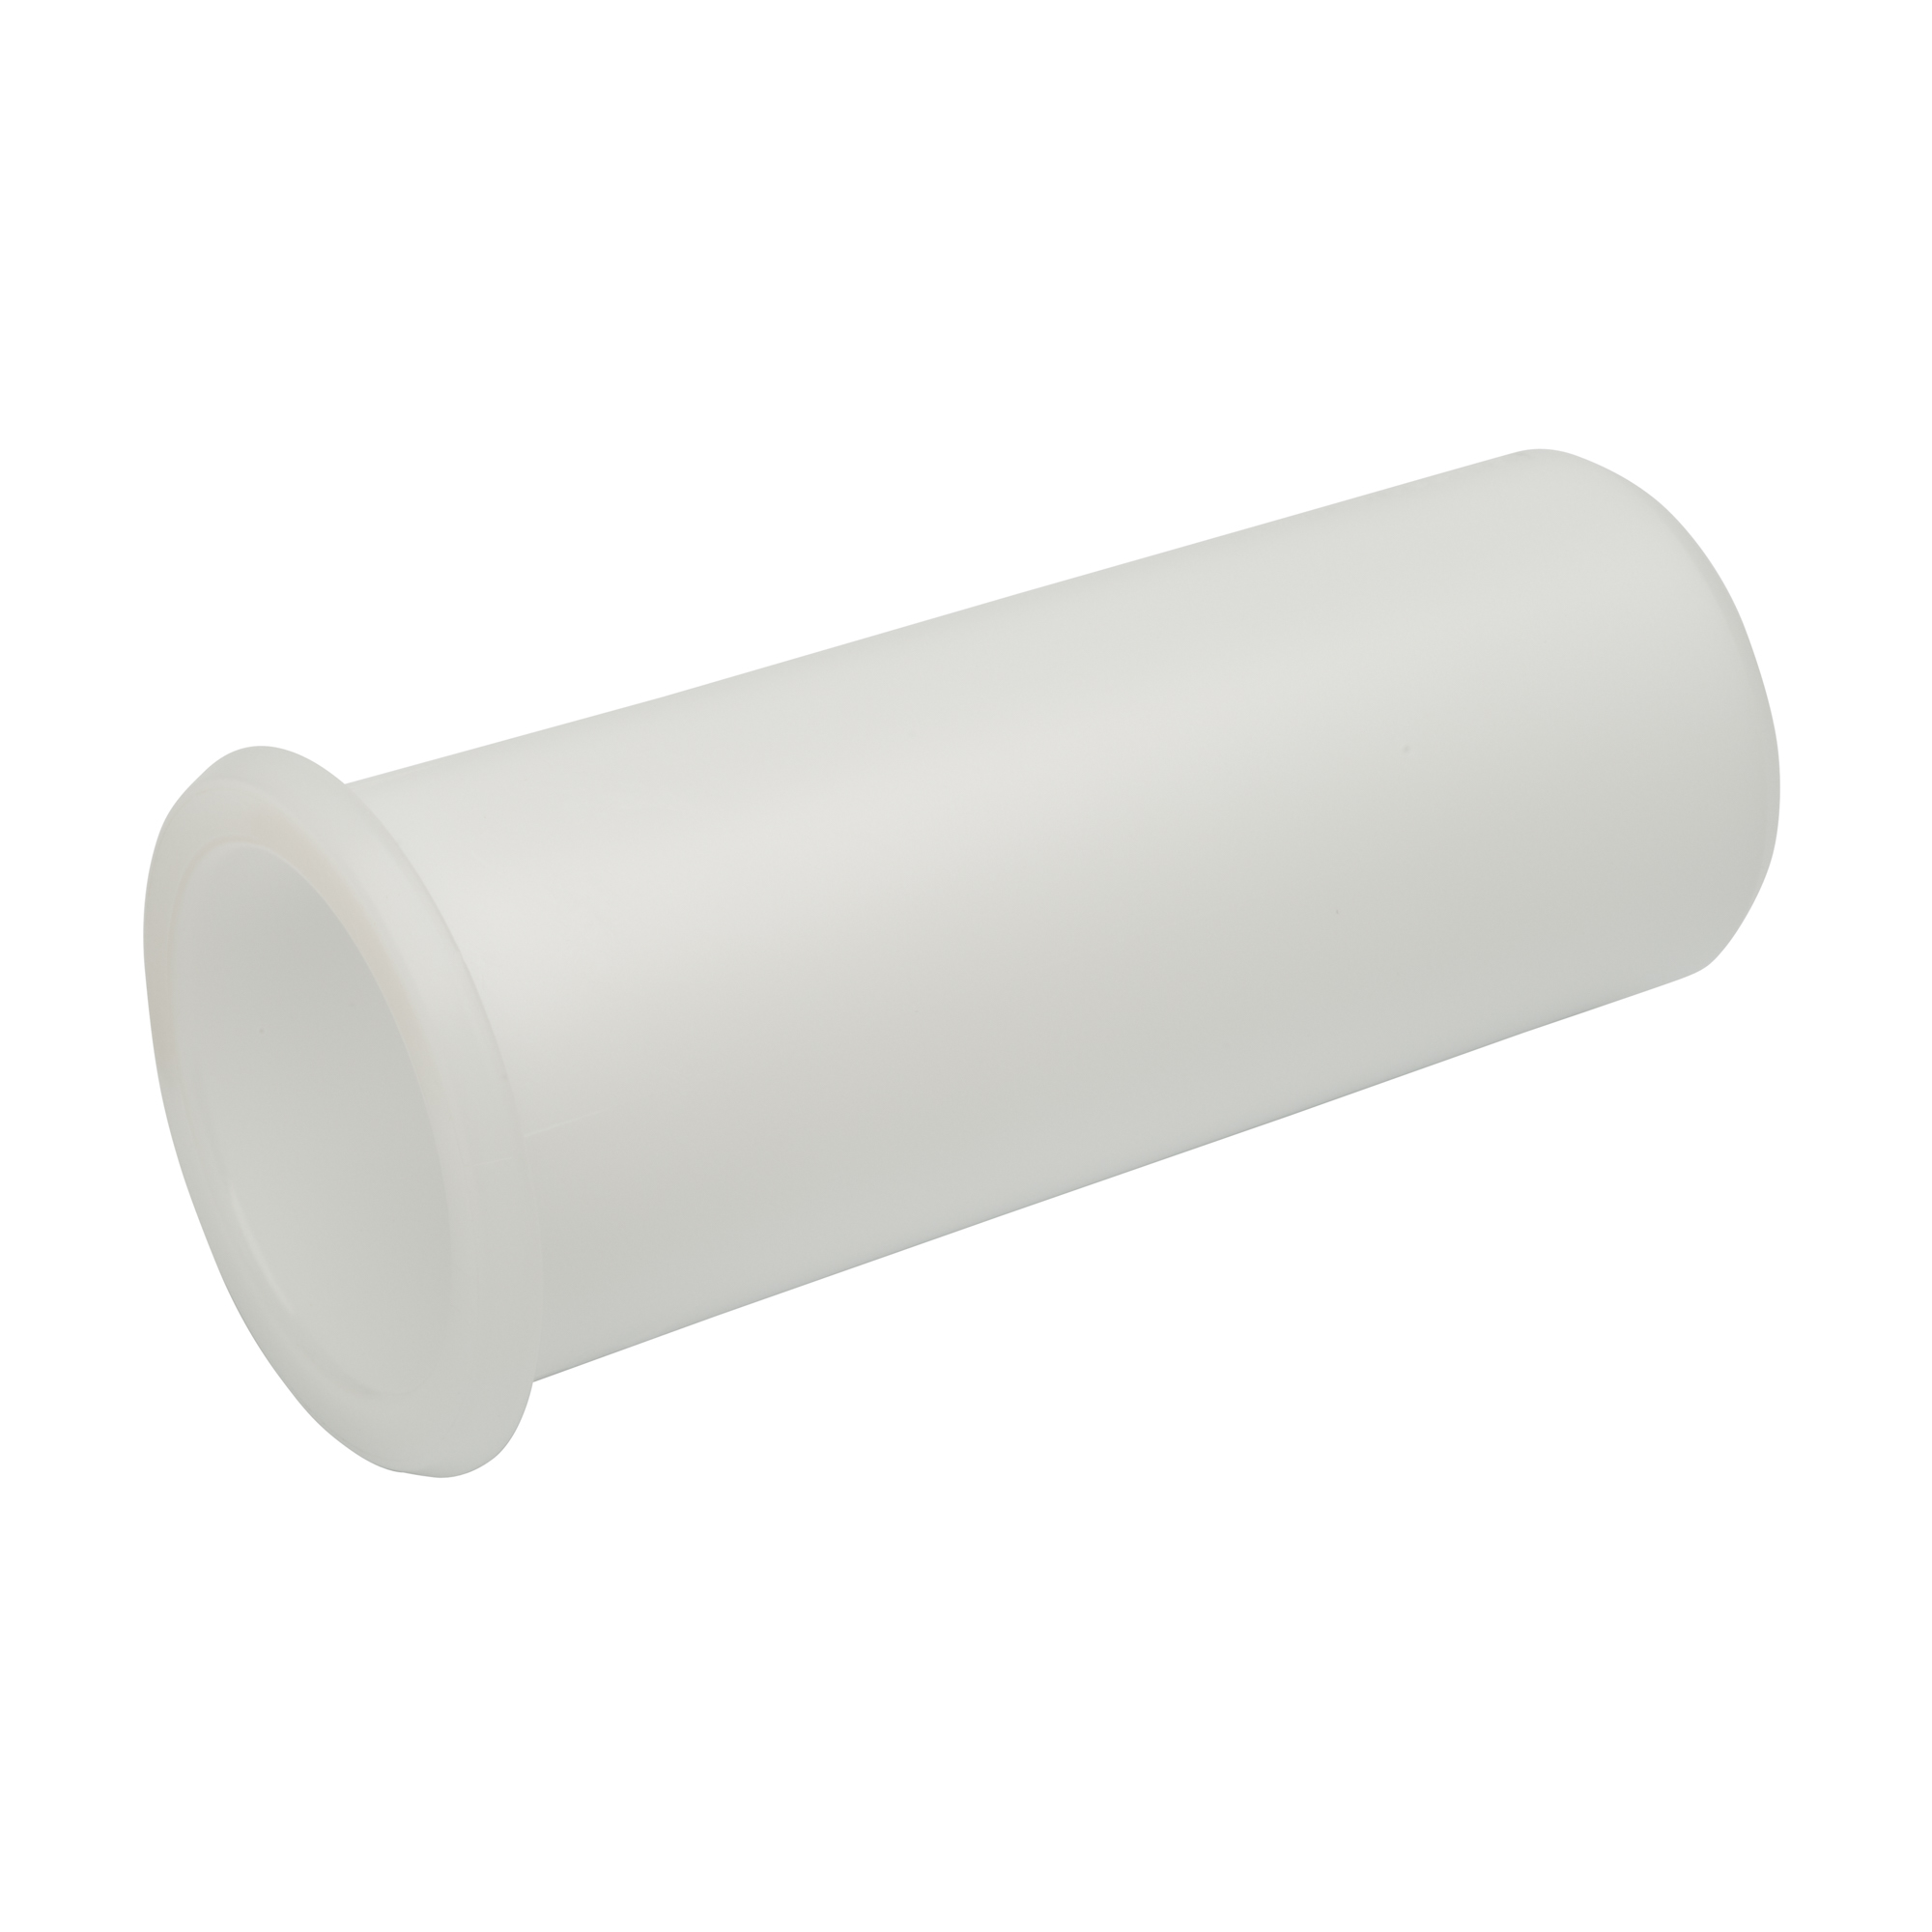 Pipe Liner - 25